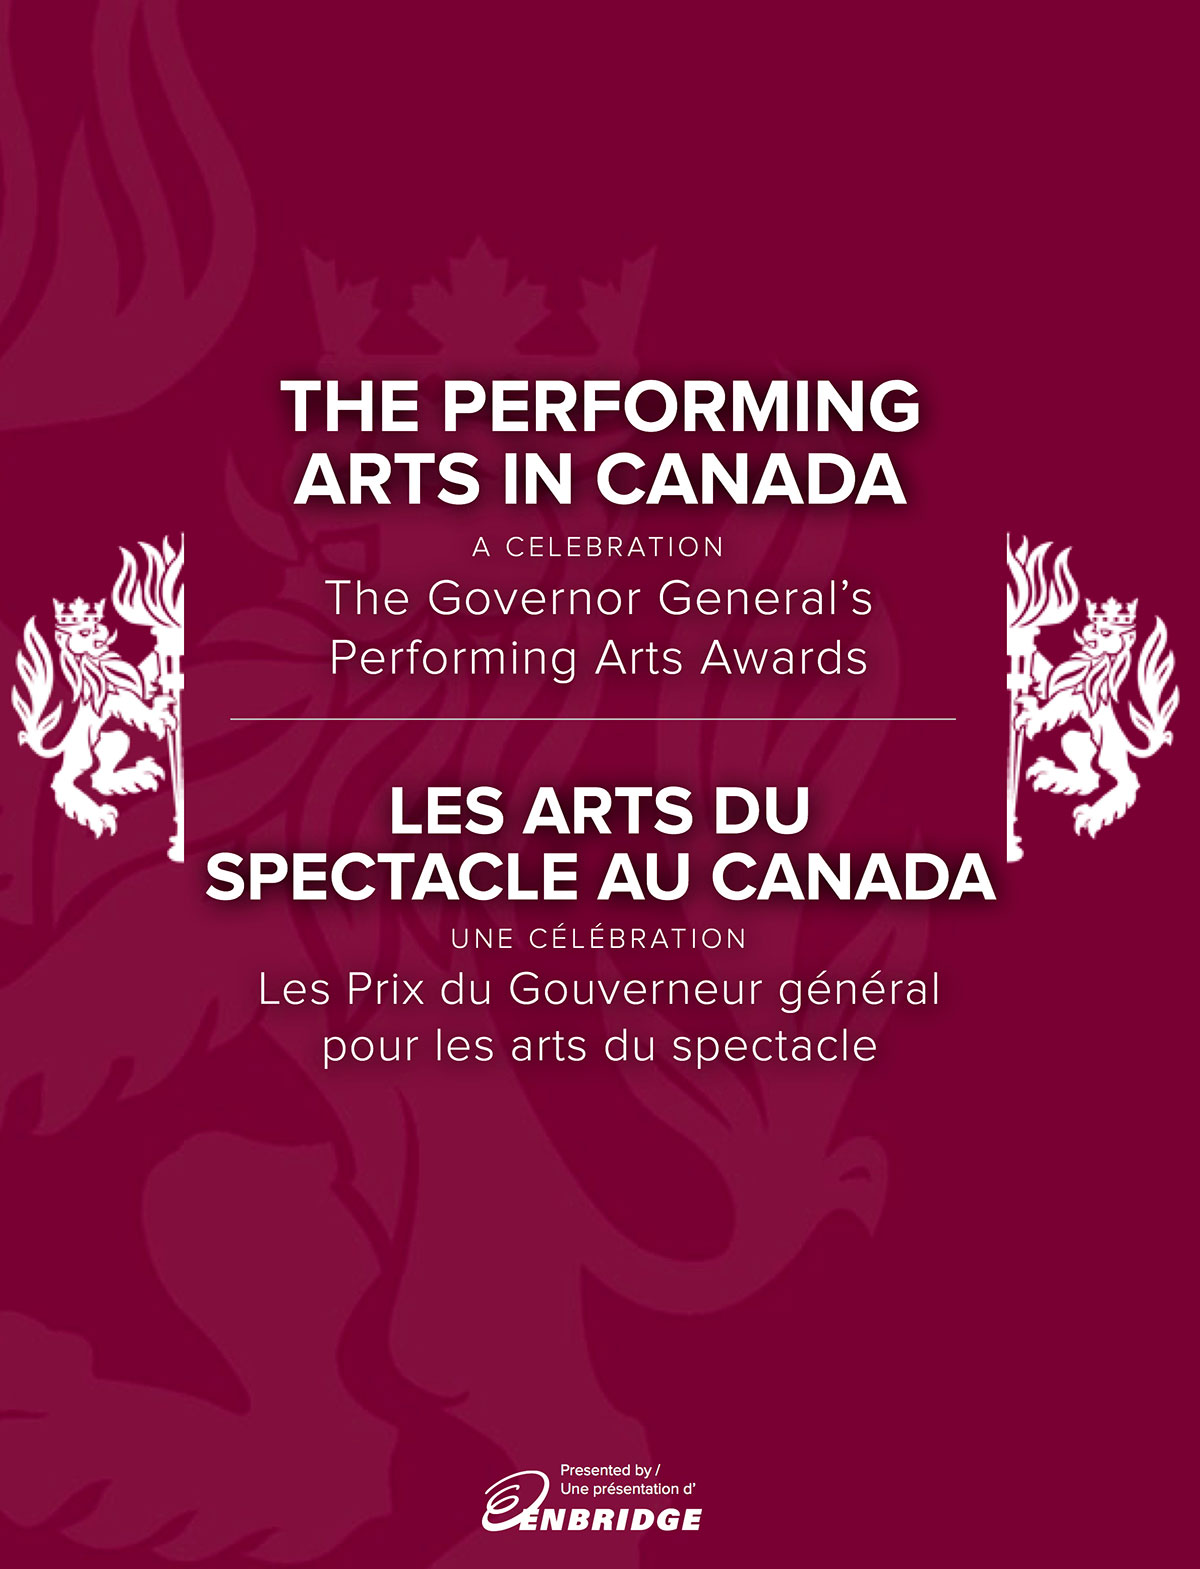 The Performing Arts in Canada